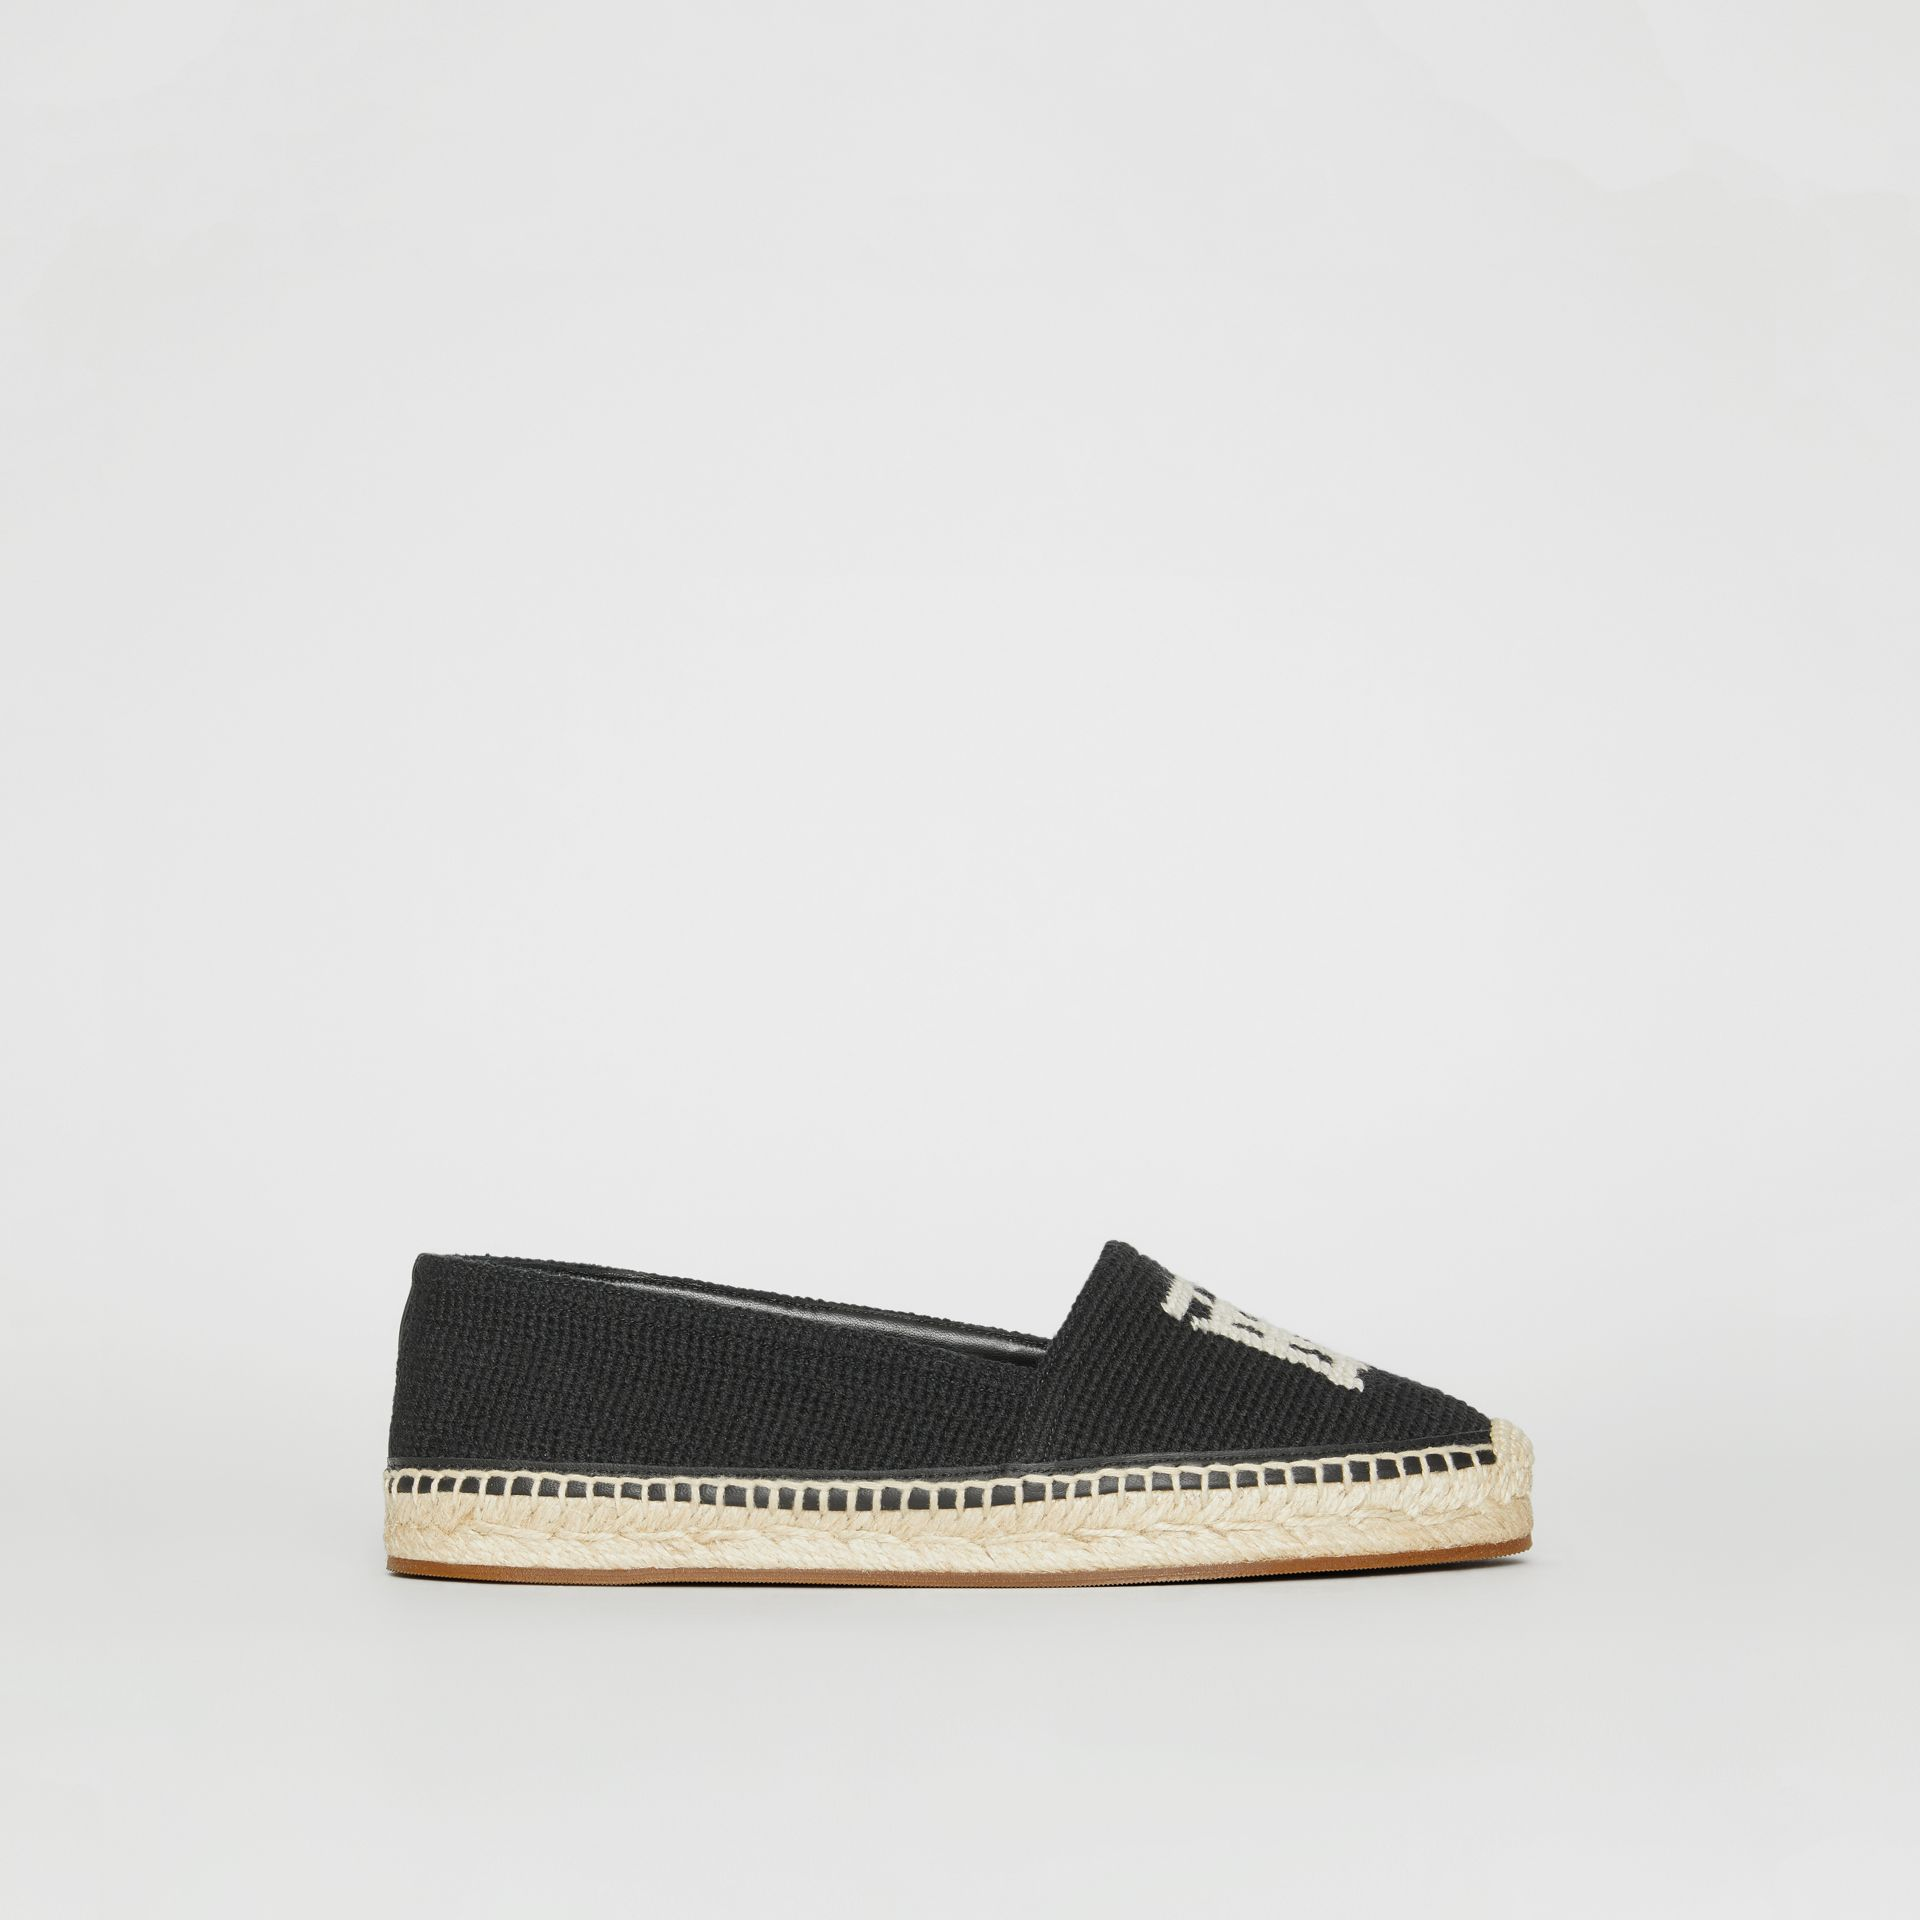 Monogram Motif Cotton and Leather Espadrilles in Black/ecru - Women | Burberry - gallery image 5